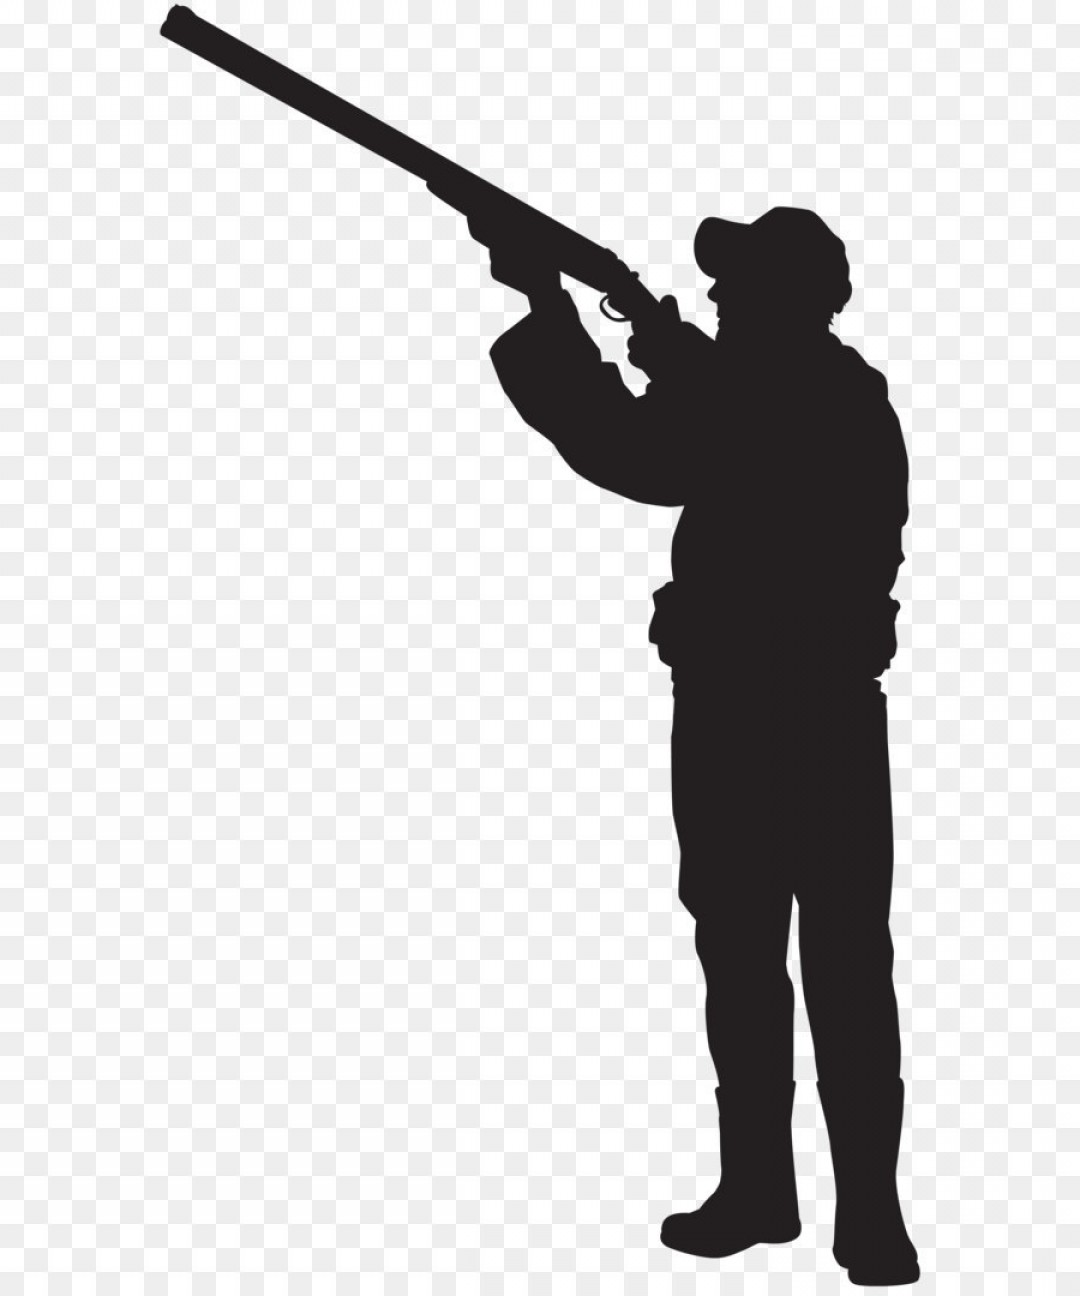 Rifle shooting sihouette standing clipart picture free stock Png Hunter Silhouette Png Clip Art Image | SOIDERGI picture free stock